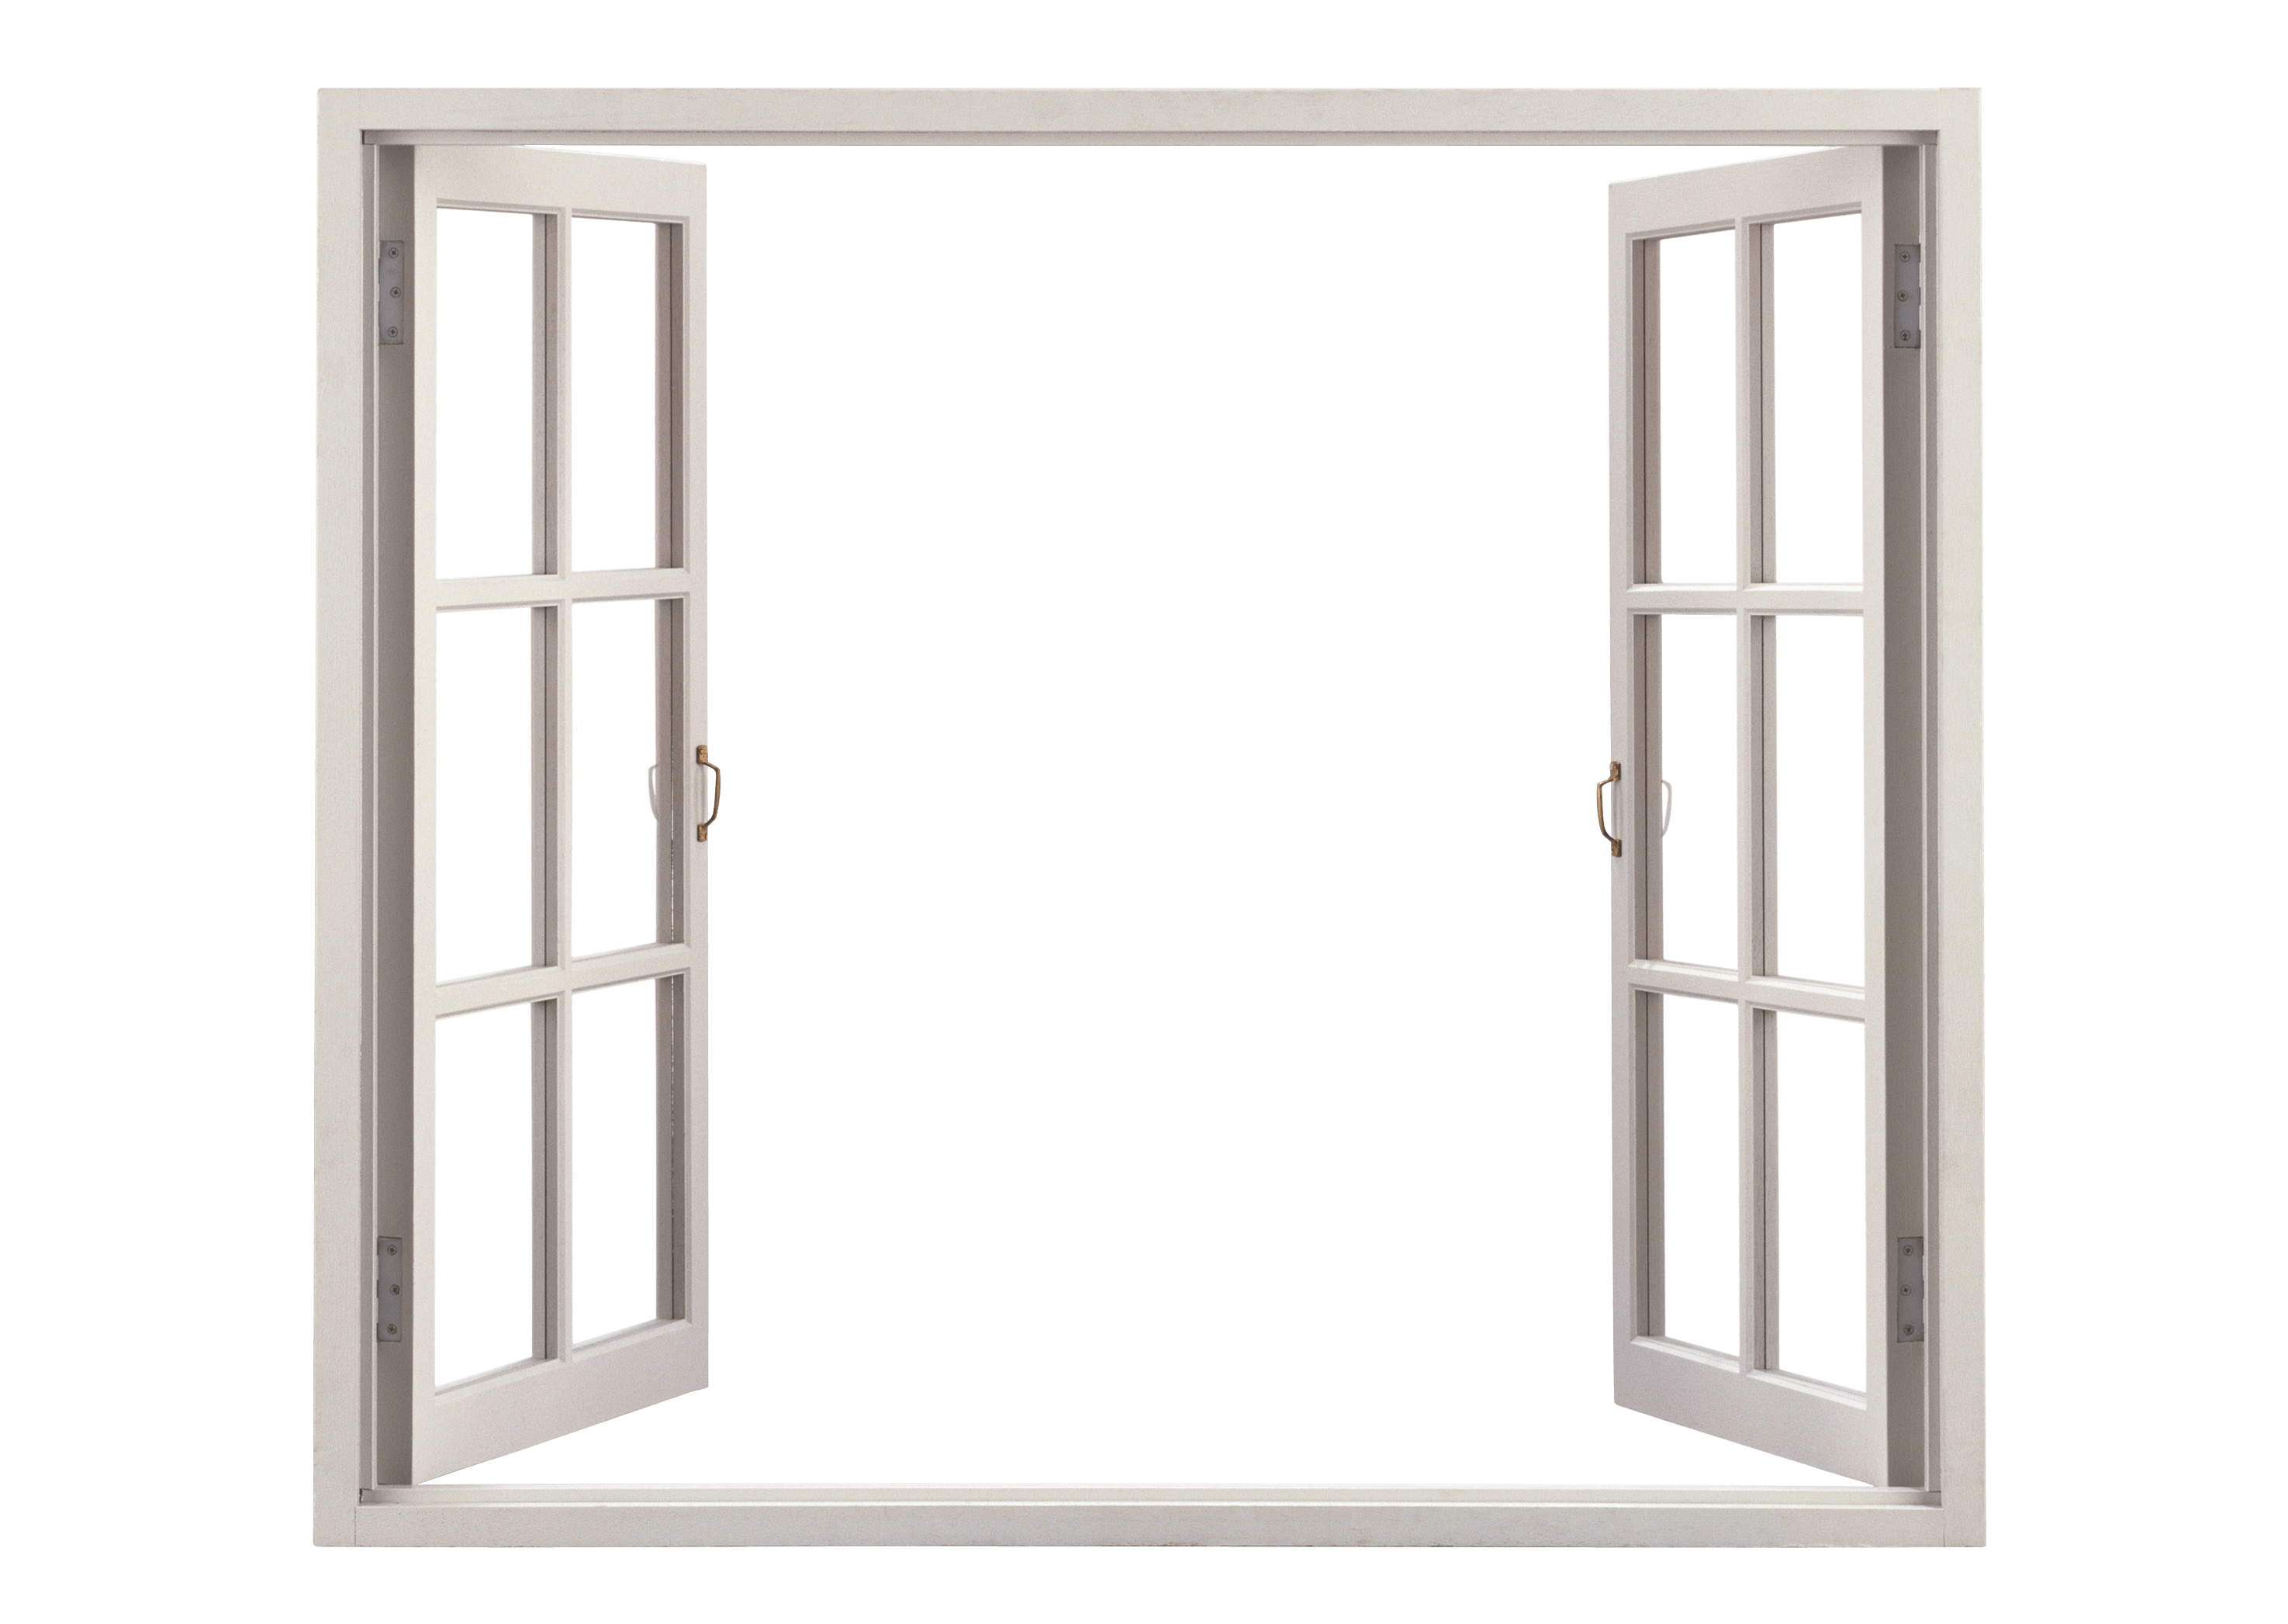 Window clipart png. Open transparent stickpng